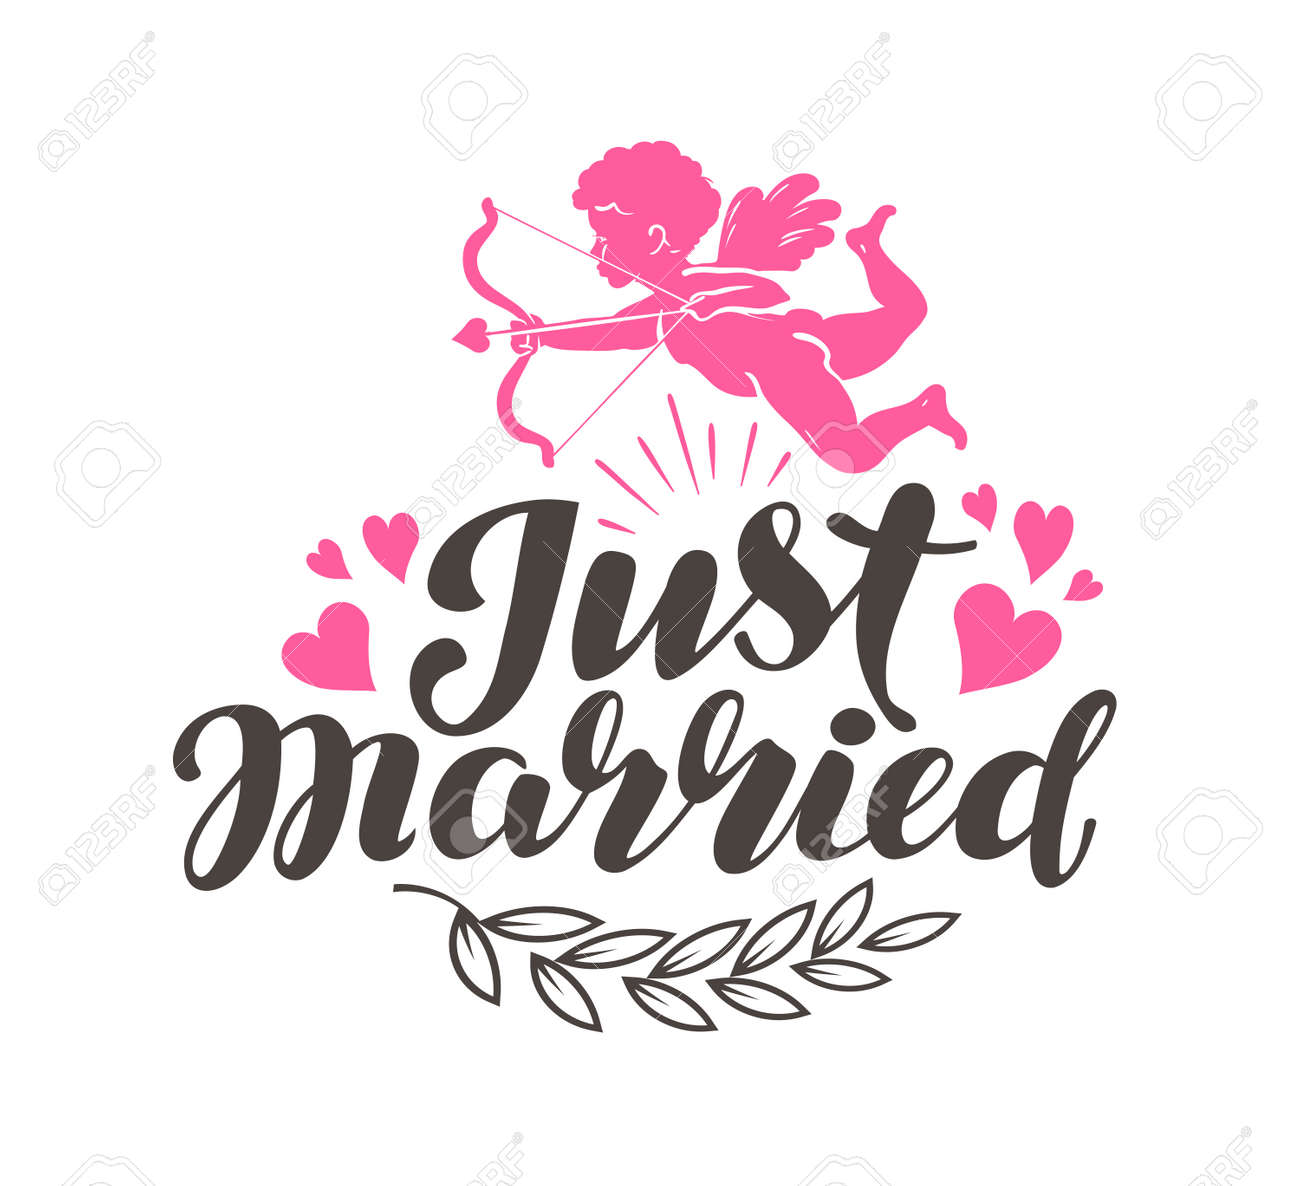 Just Married. Label with beautiful lettering, calligraphy. Vector illustration - 70970858